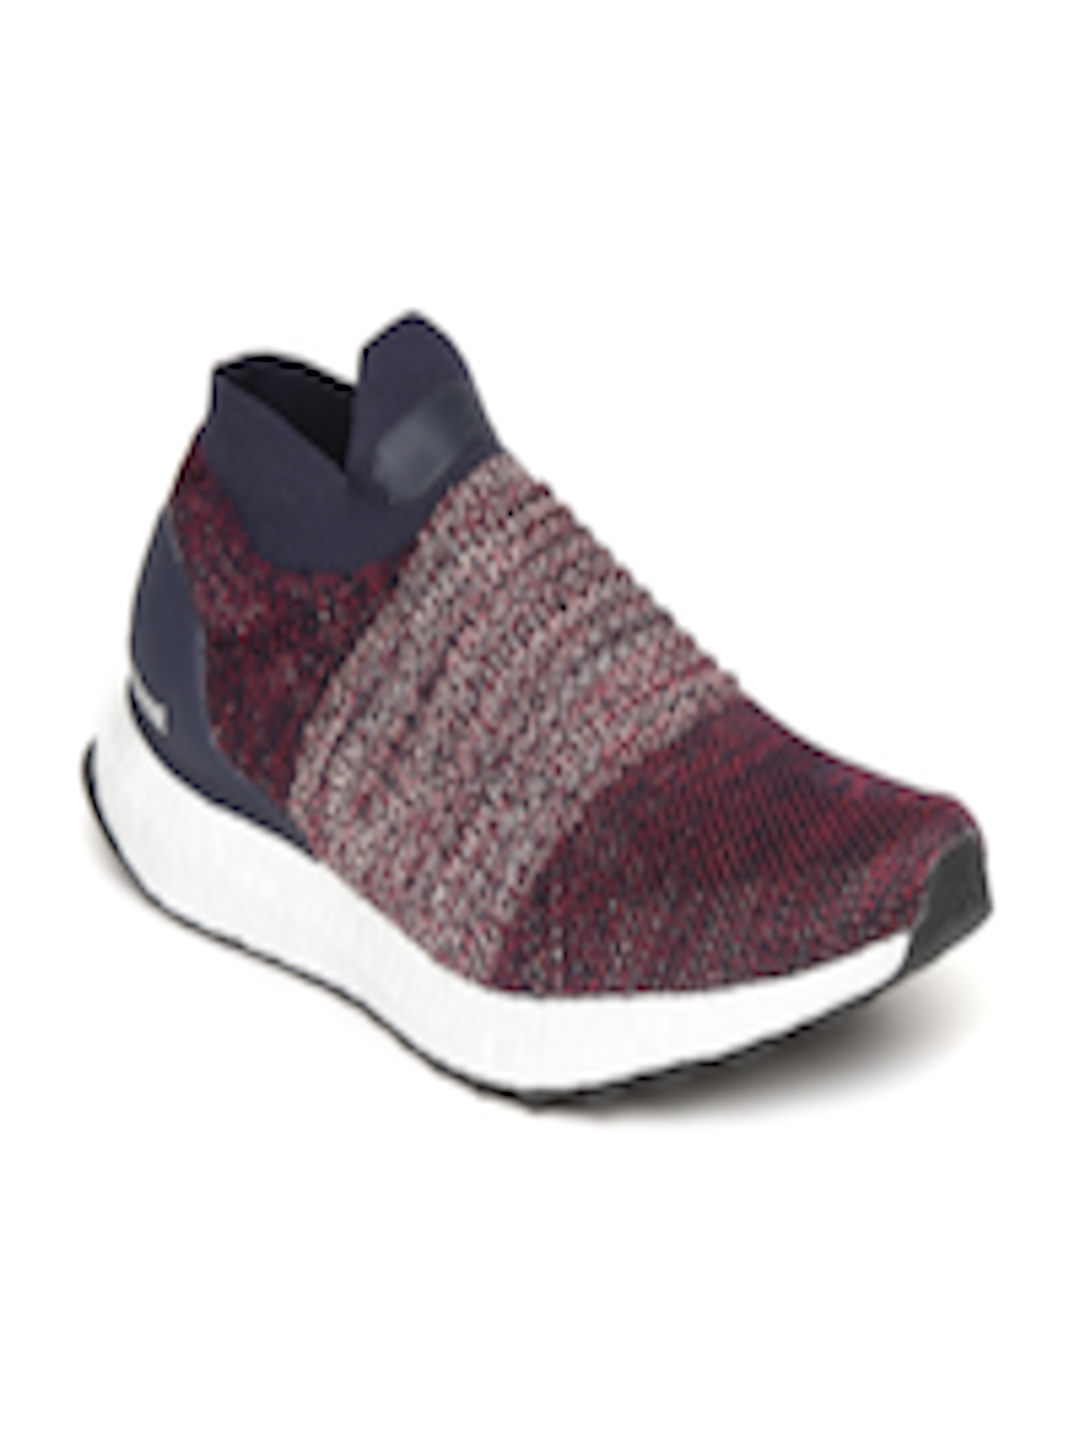 23d3c0c7e29a9 ... where to buy buy adidas women burgundy navy ultraboost laceless running  shoes sports shoes for women